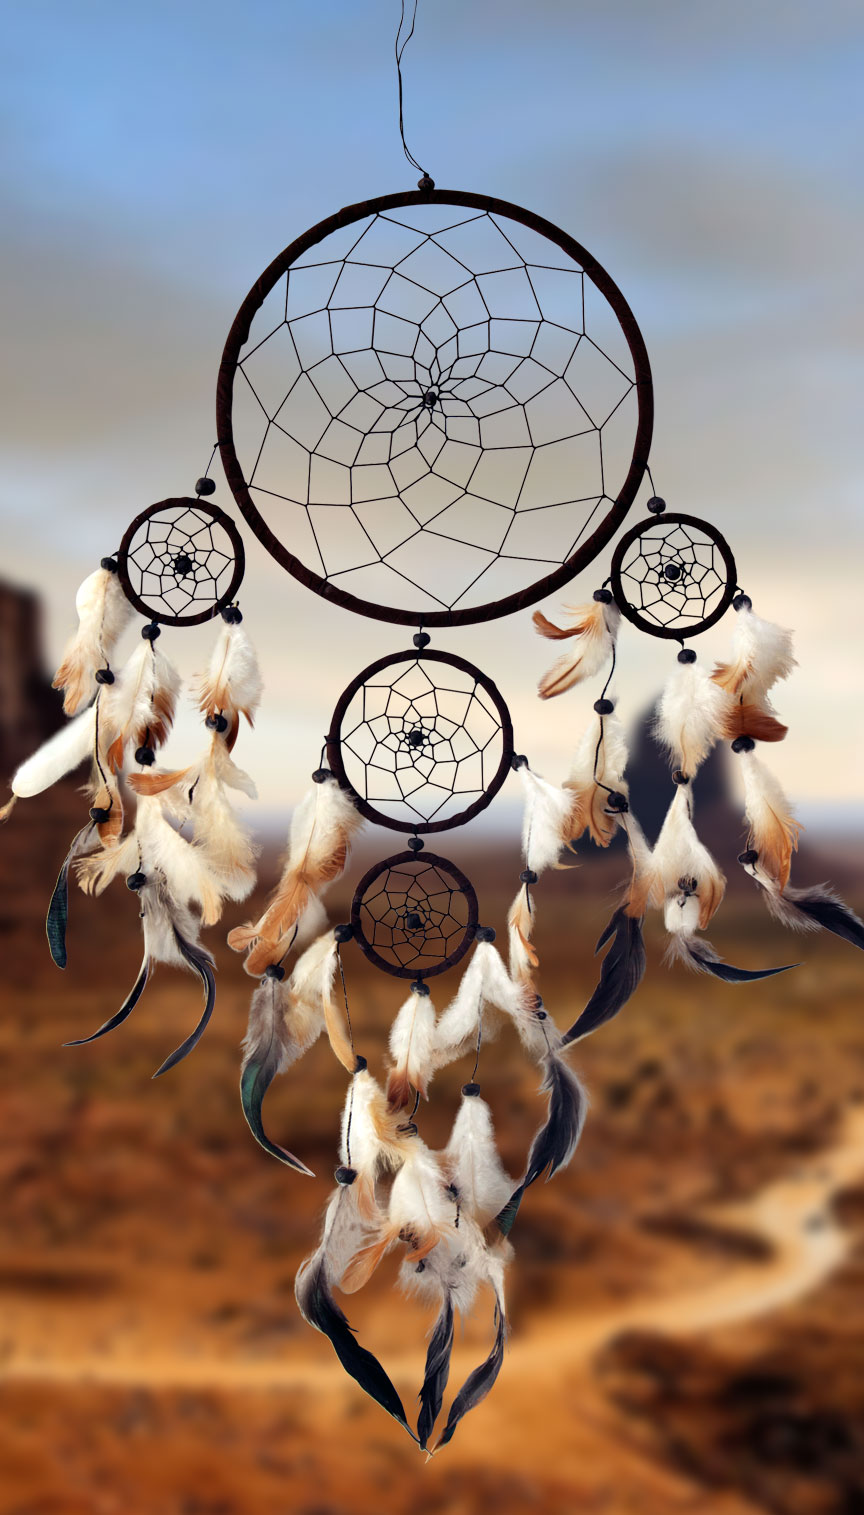 Shows an image of dreamcatcher owg011 on a scenic background